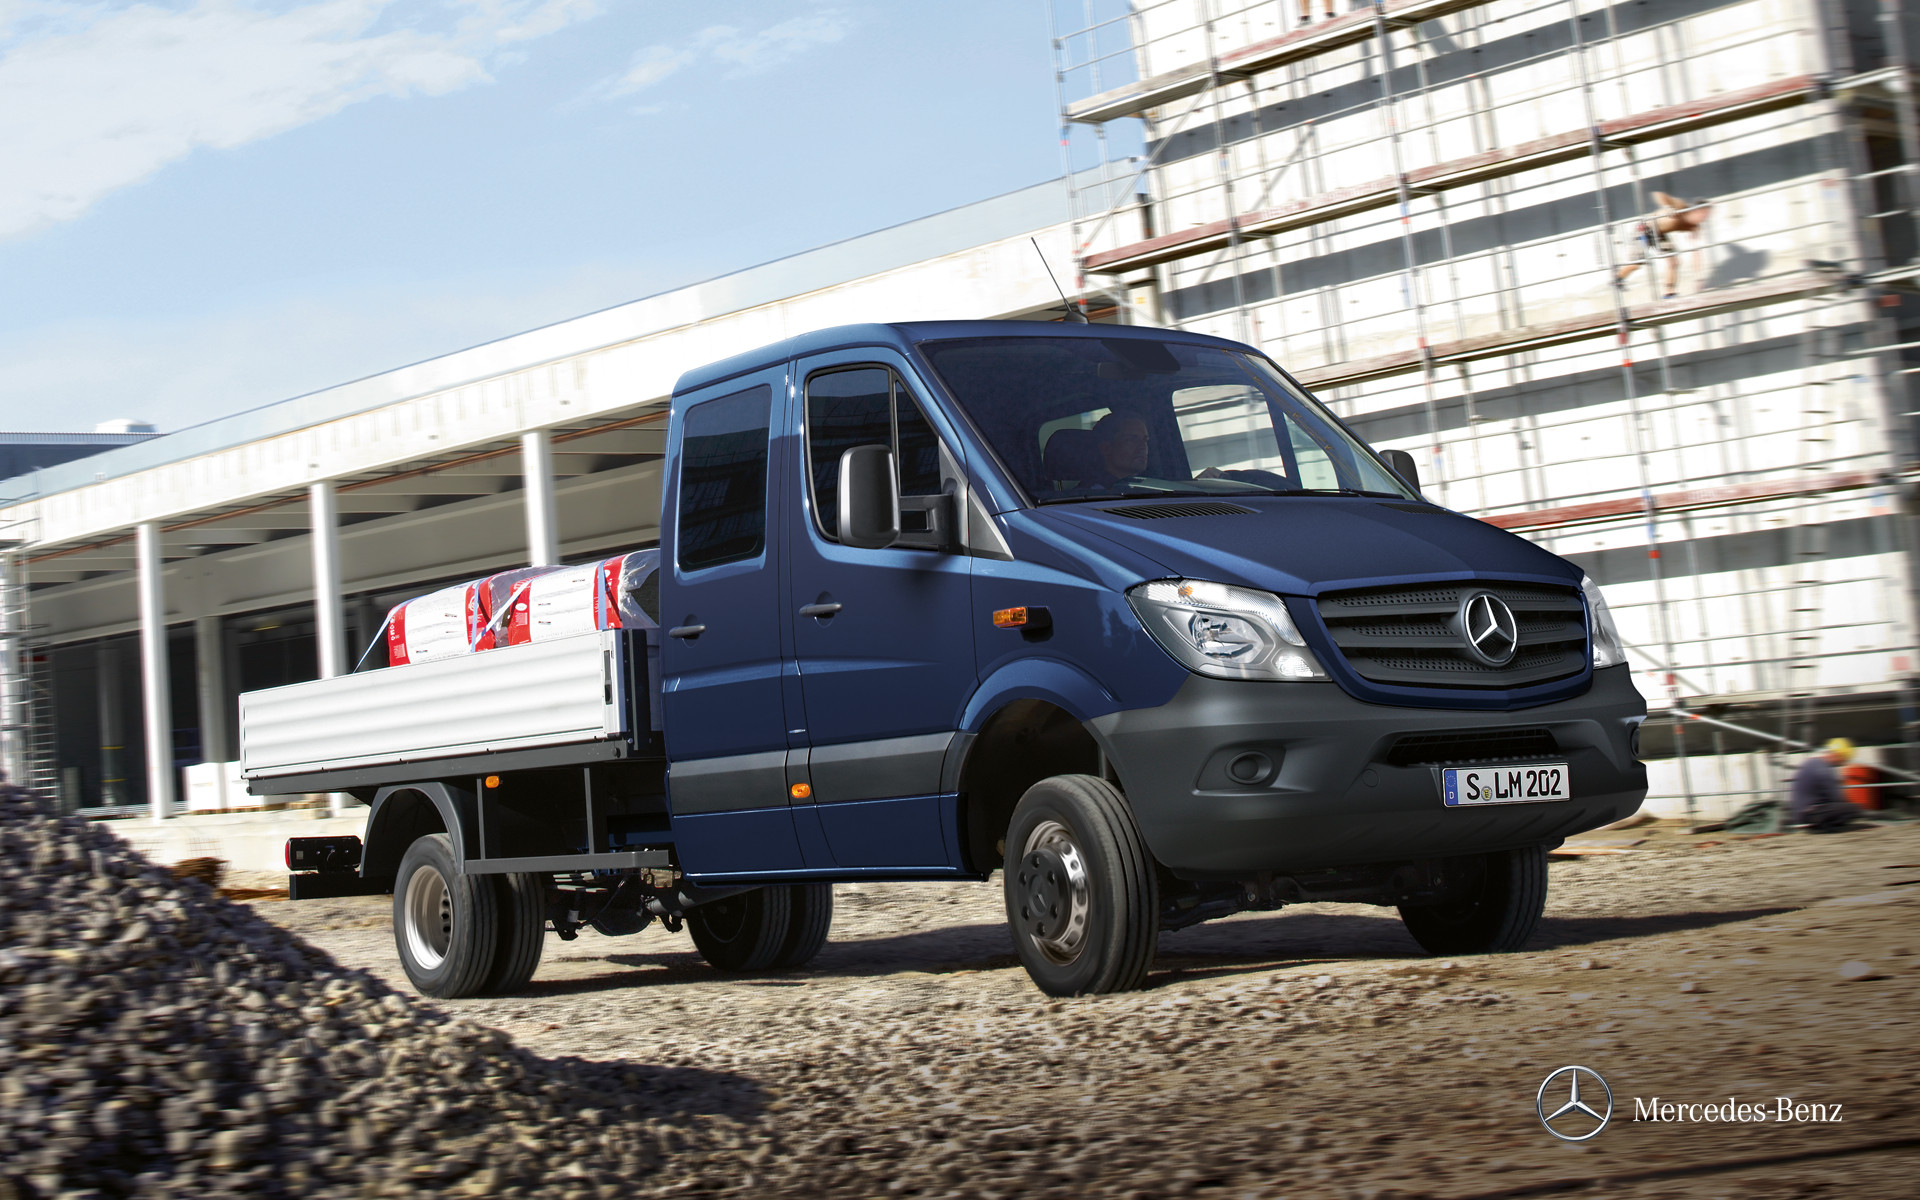 Фото автомобиля Mercedes-Benz Sprinter бортовой 4-дв.